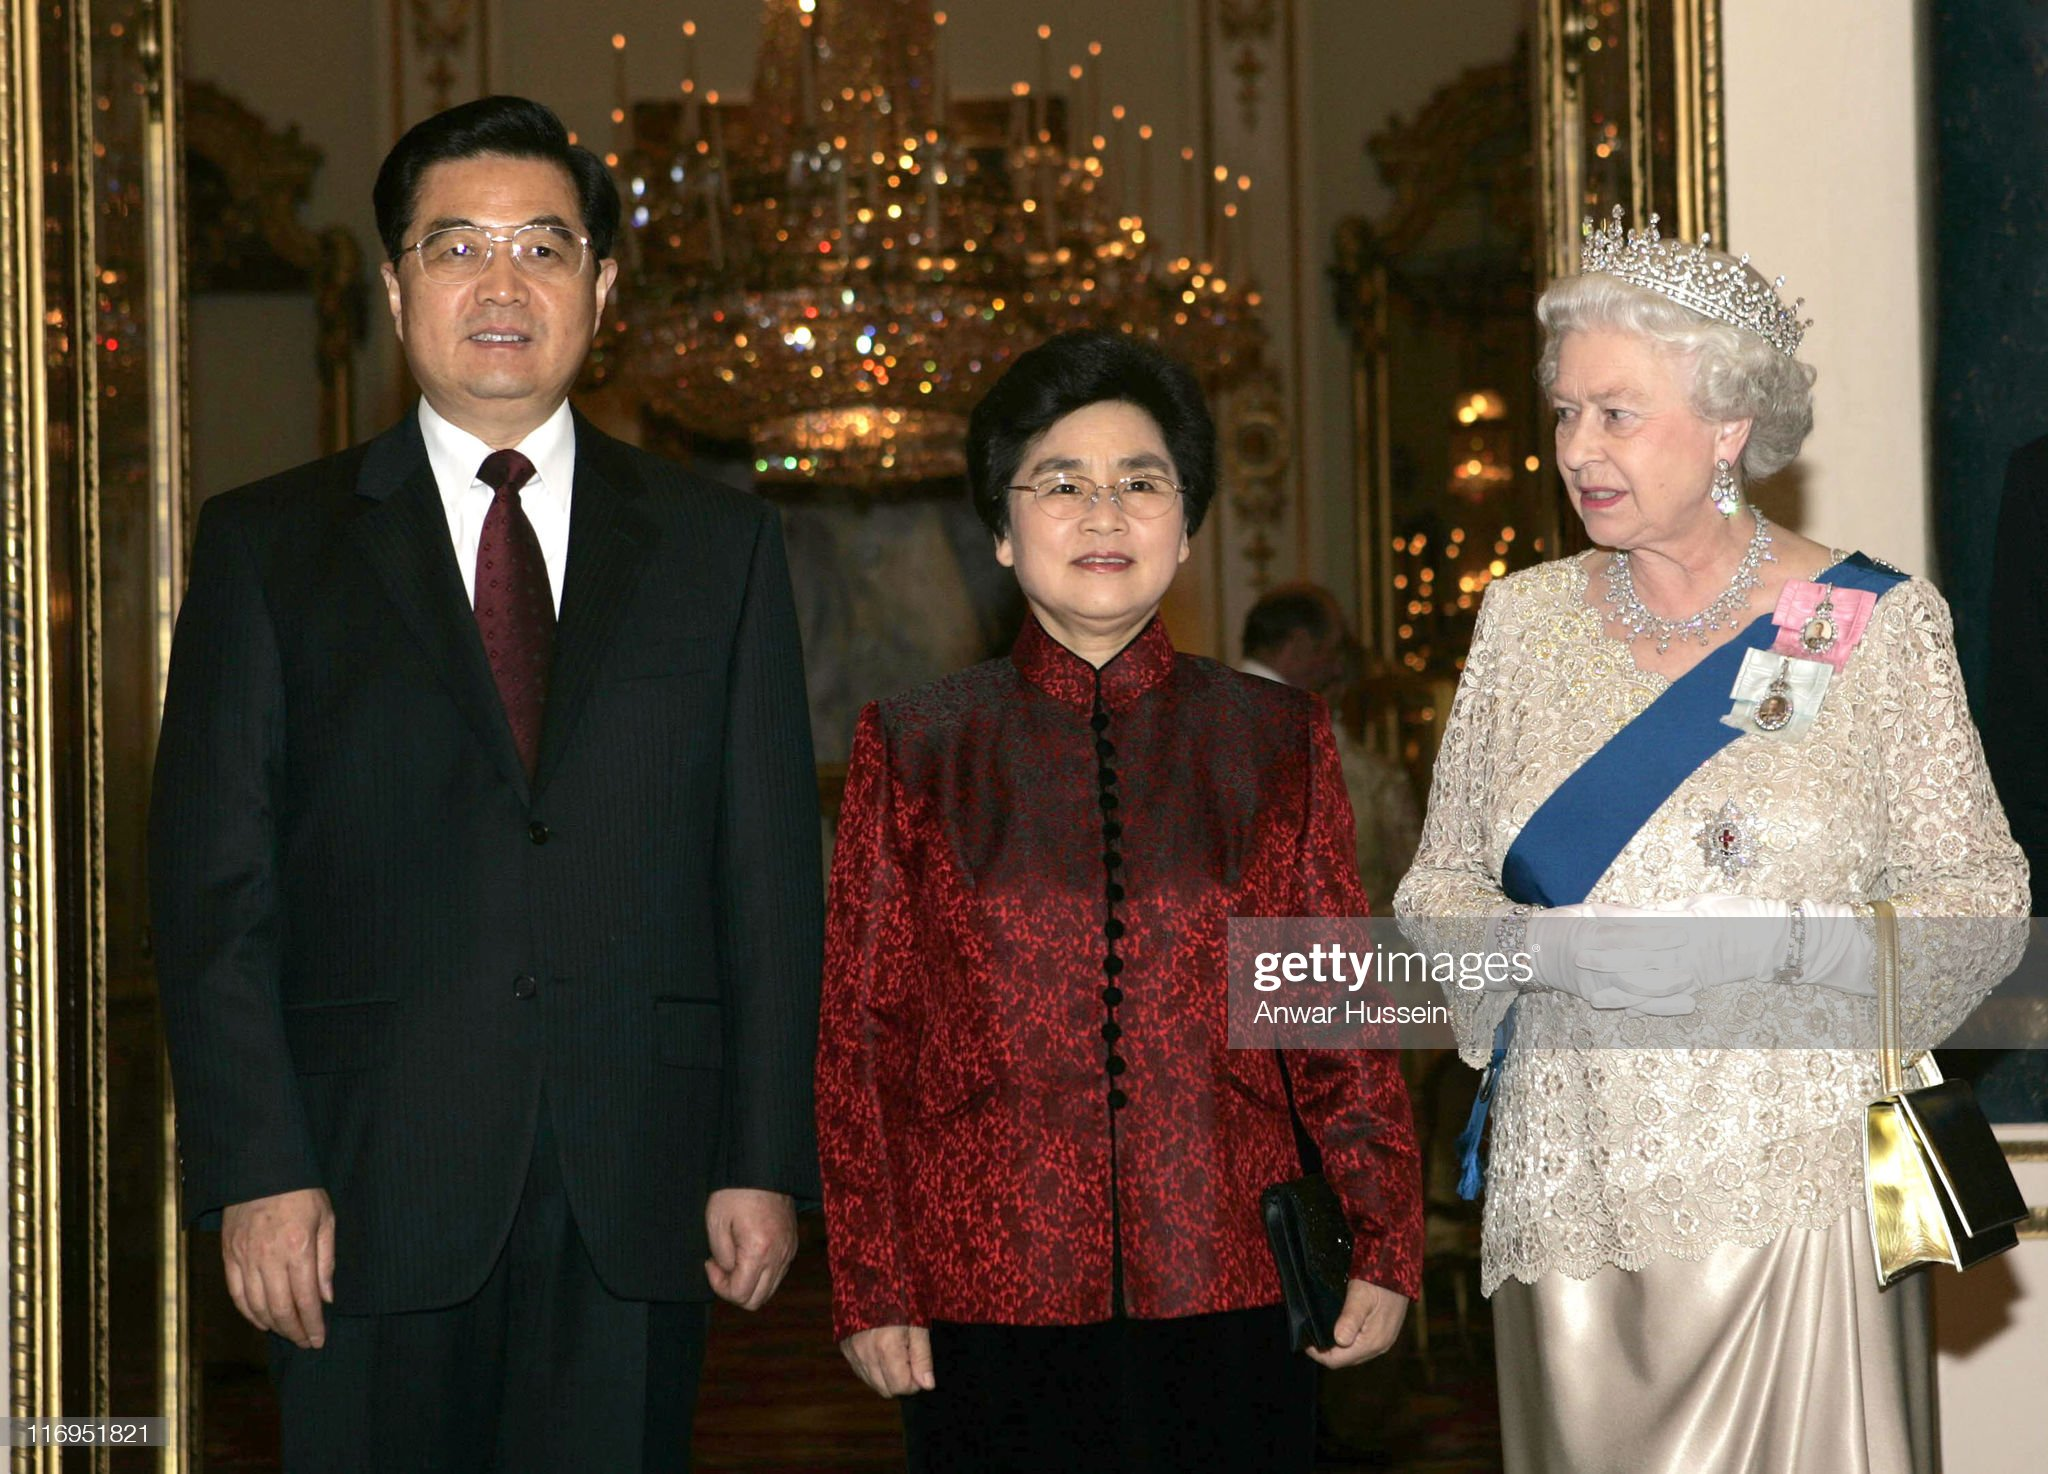 President Hu Jintao attends a Banquet with HM The Queen Elizabeth II during State Visit : News Photo